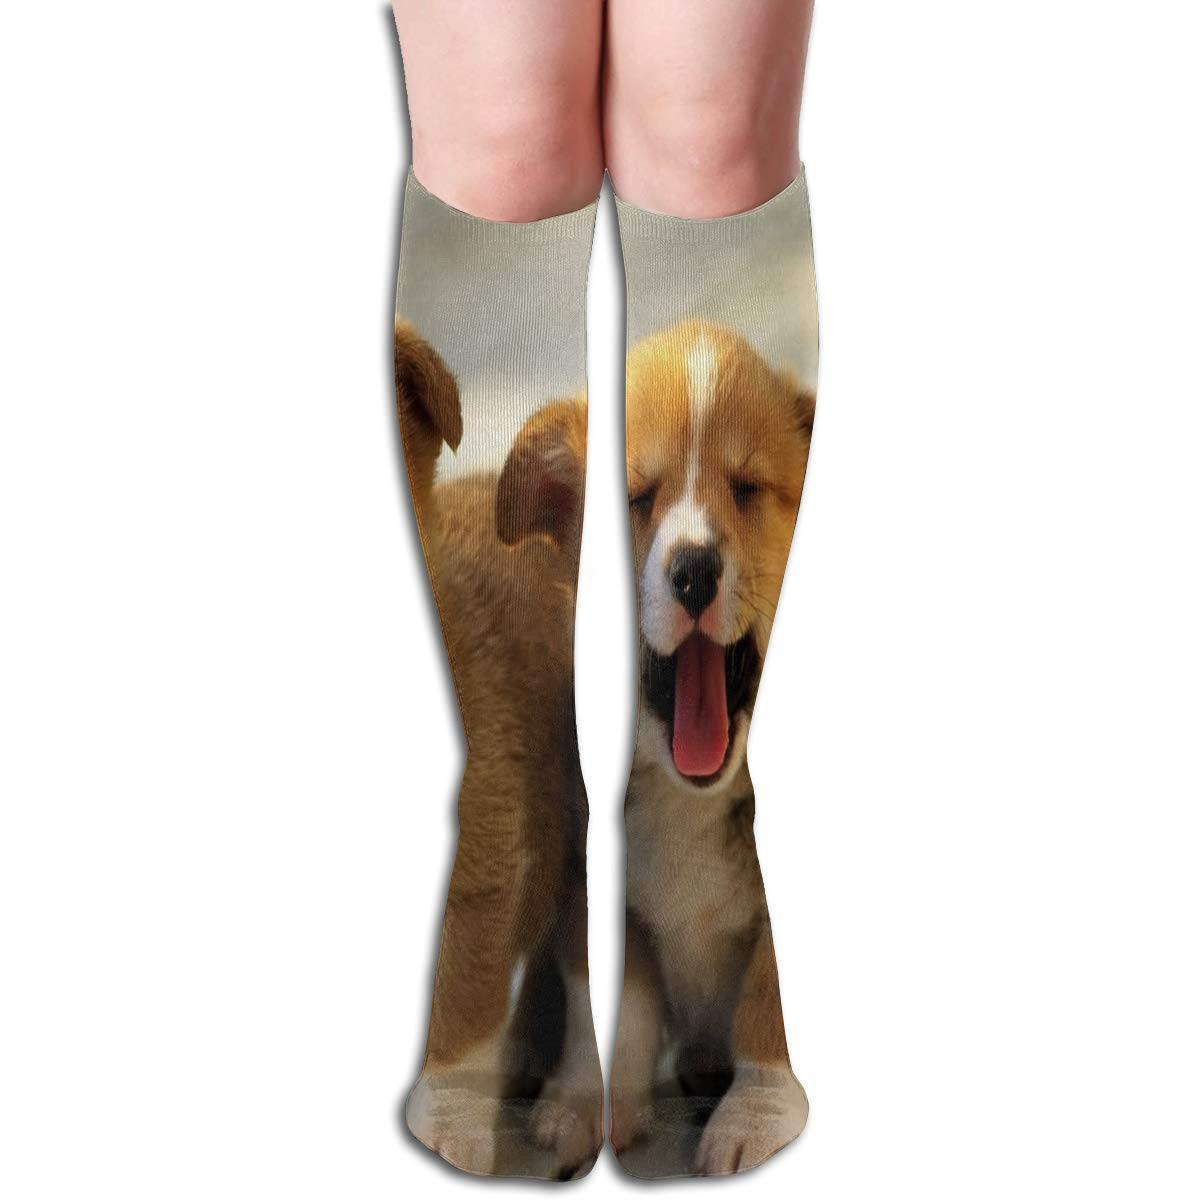 Girls Socks Mid-Calf Puppies Dogs Animal Winter Hot For Halloween